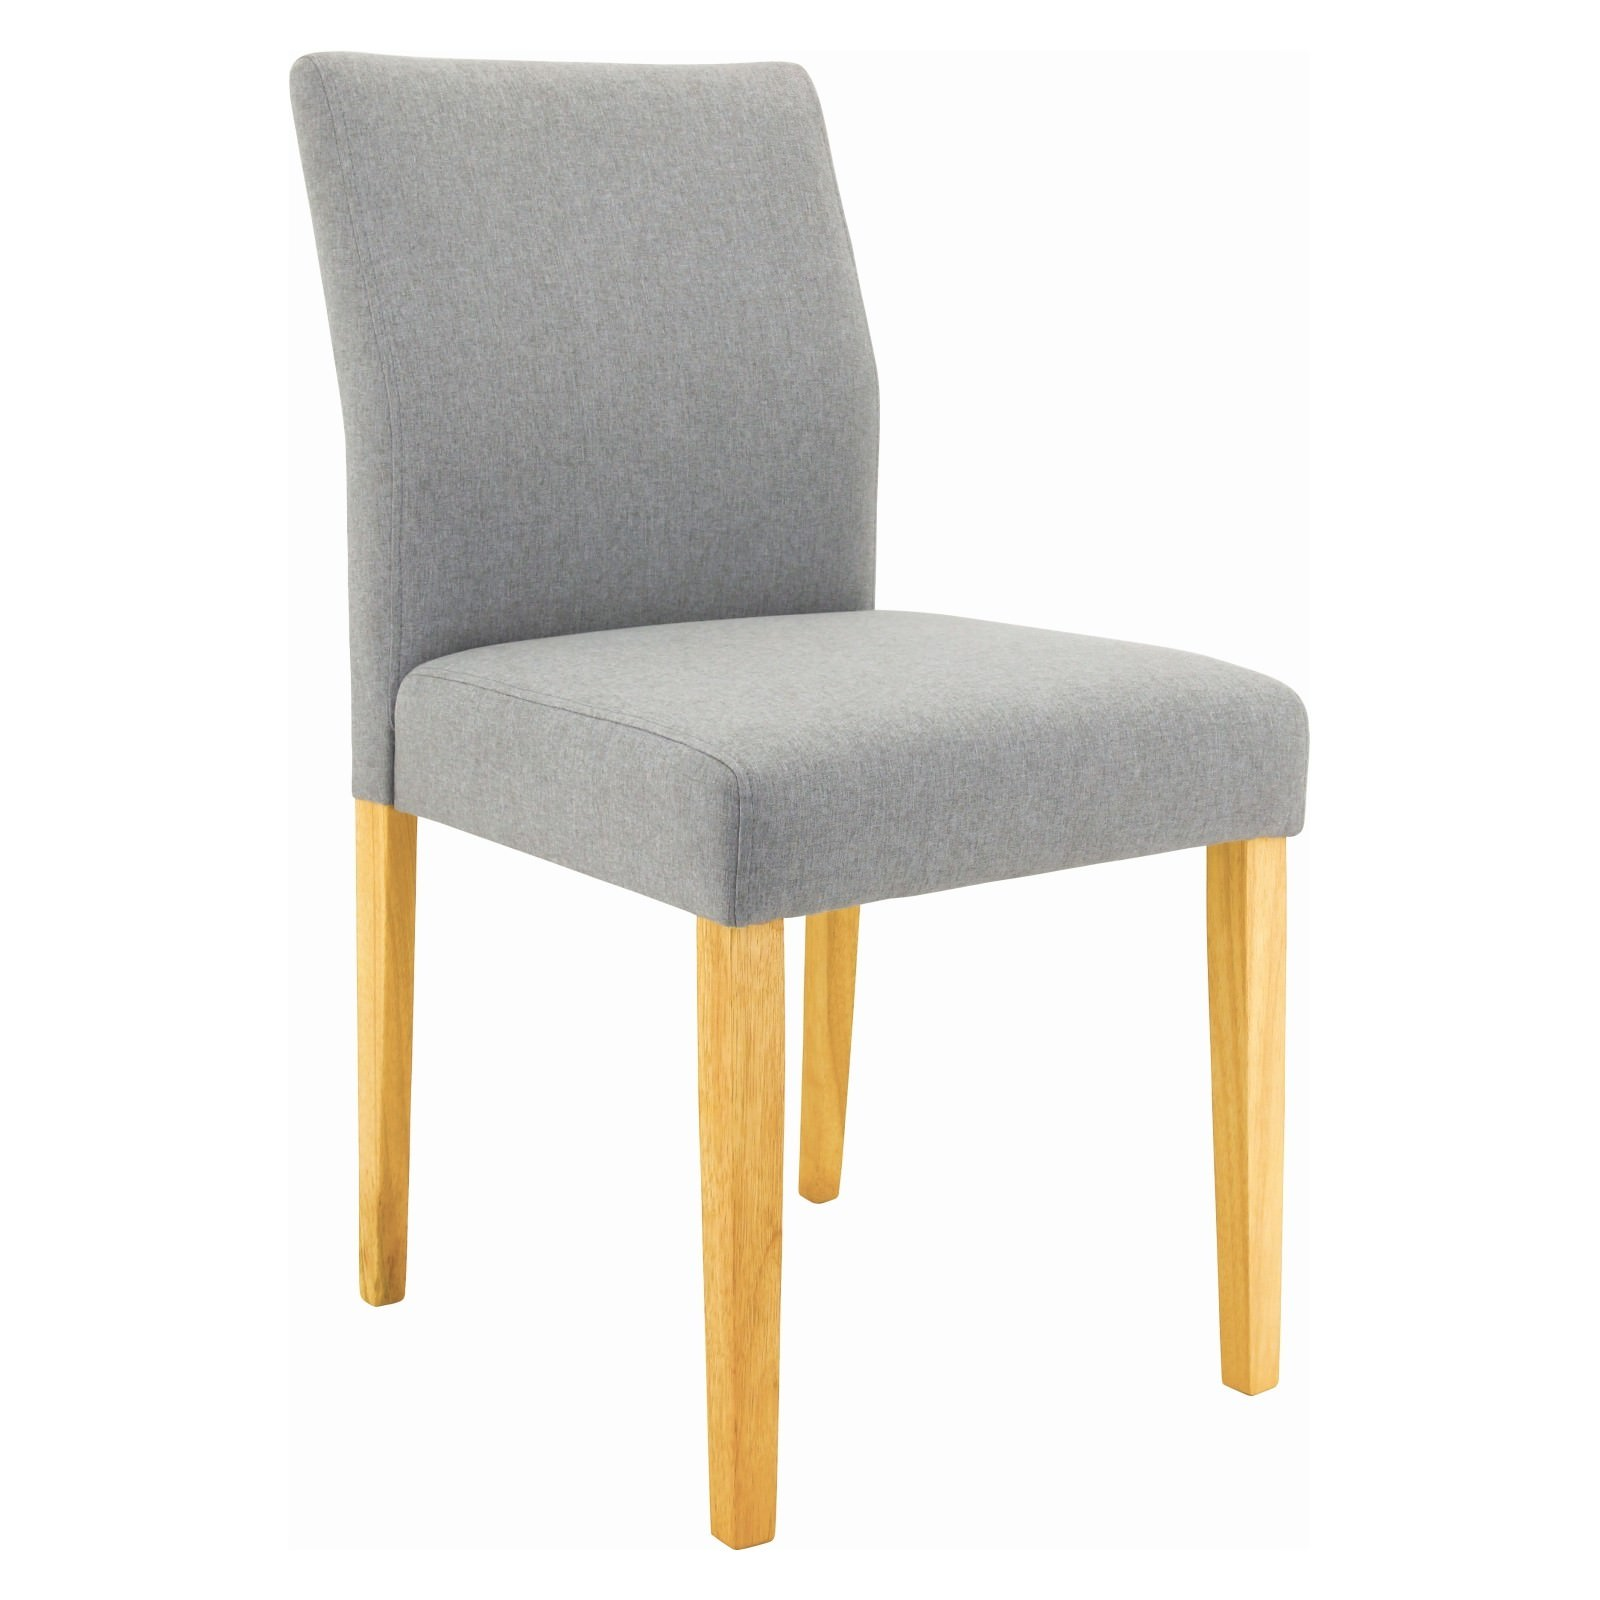 Ladee Fabric Dining Chair, Light Grey / Natural